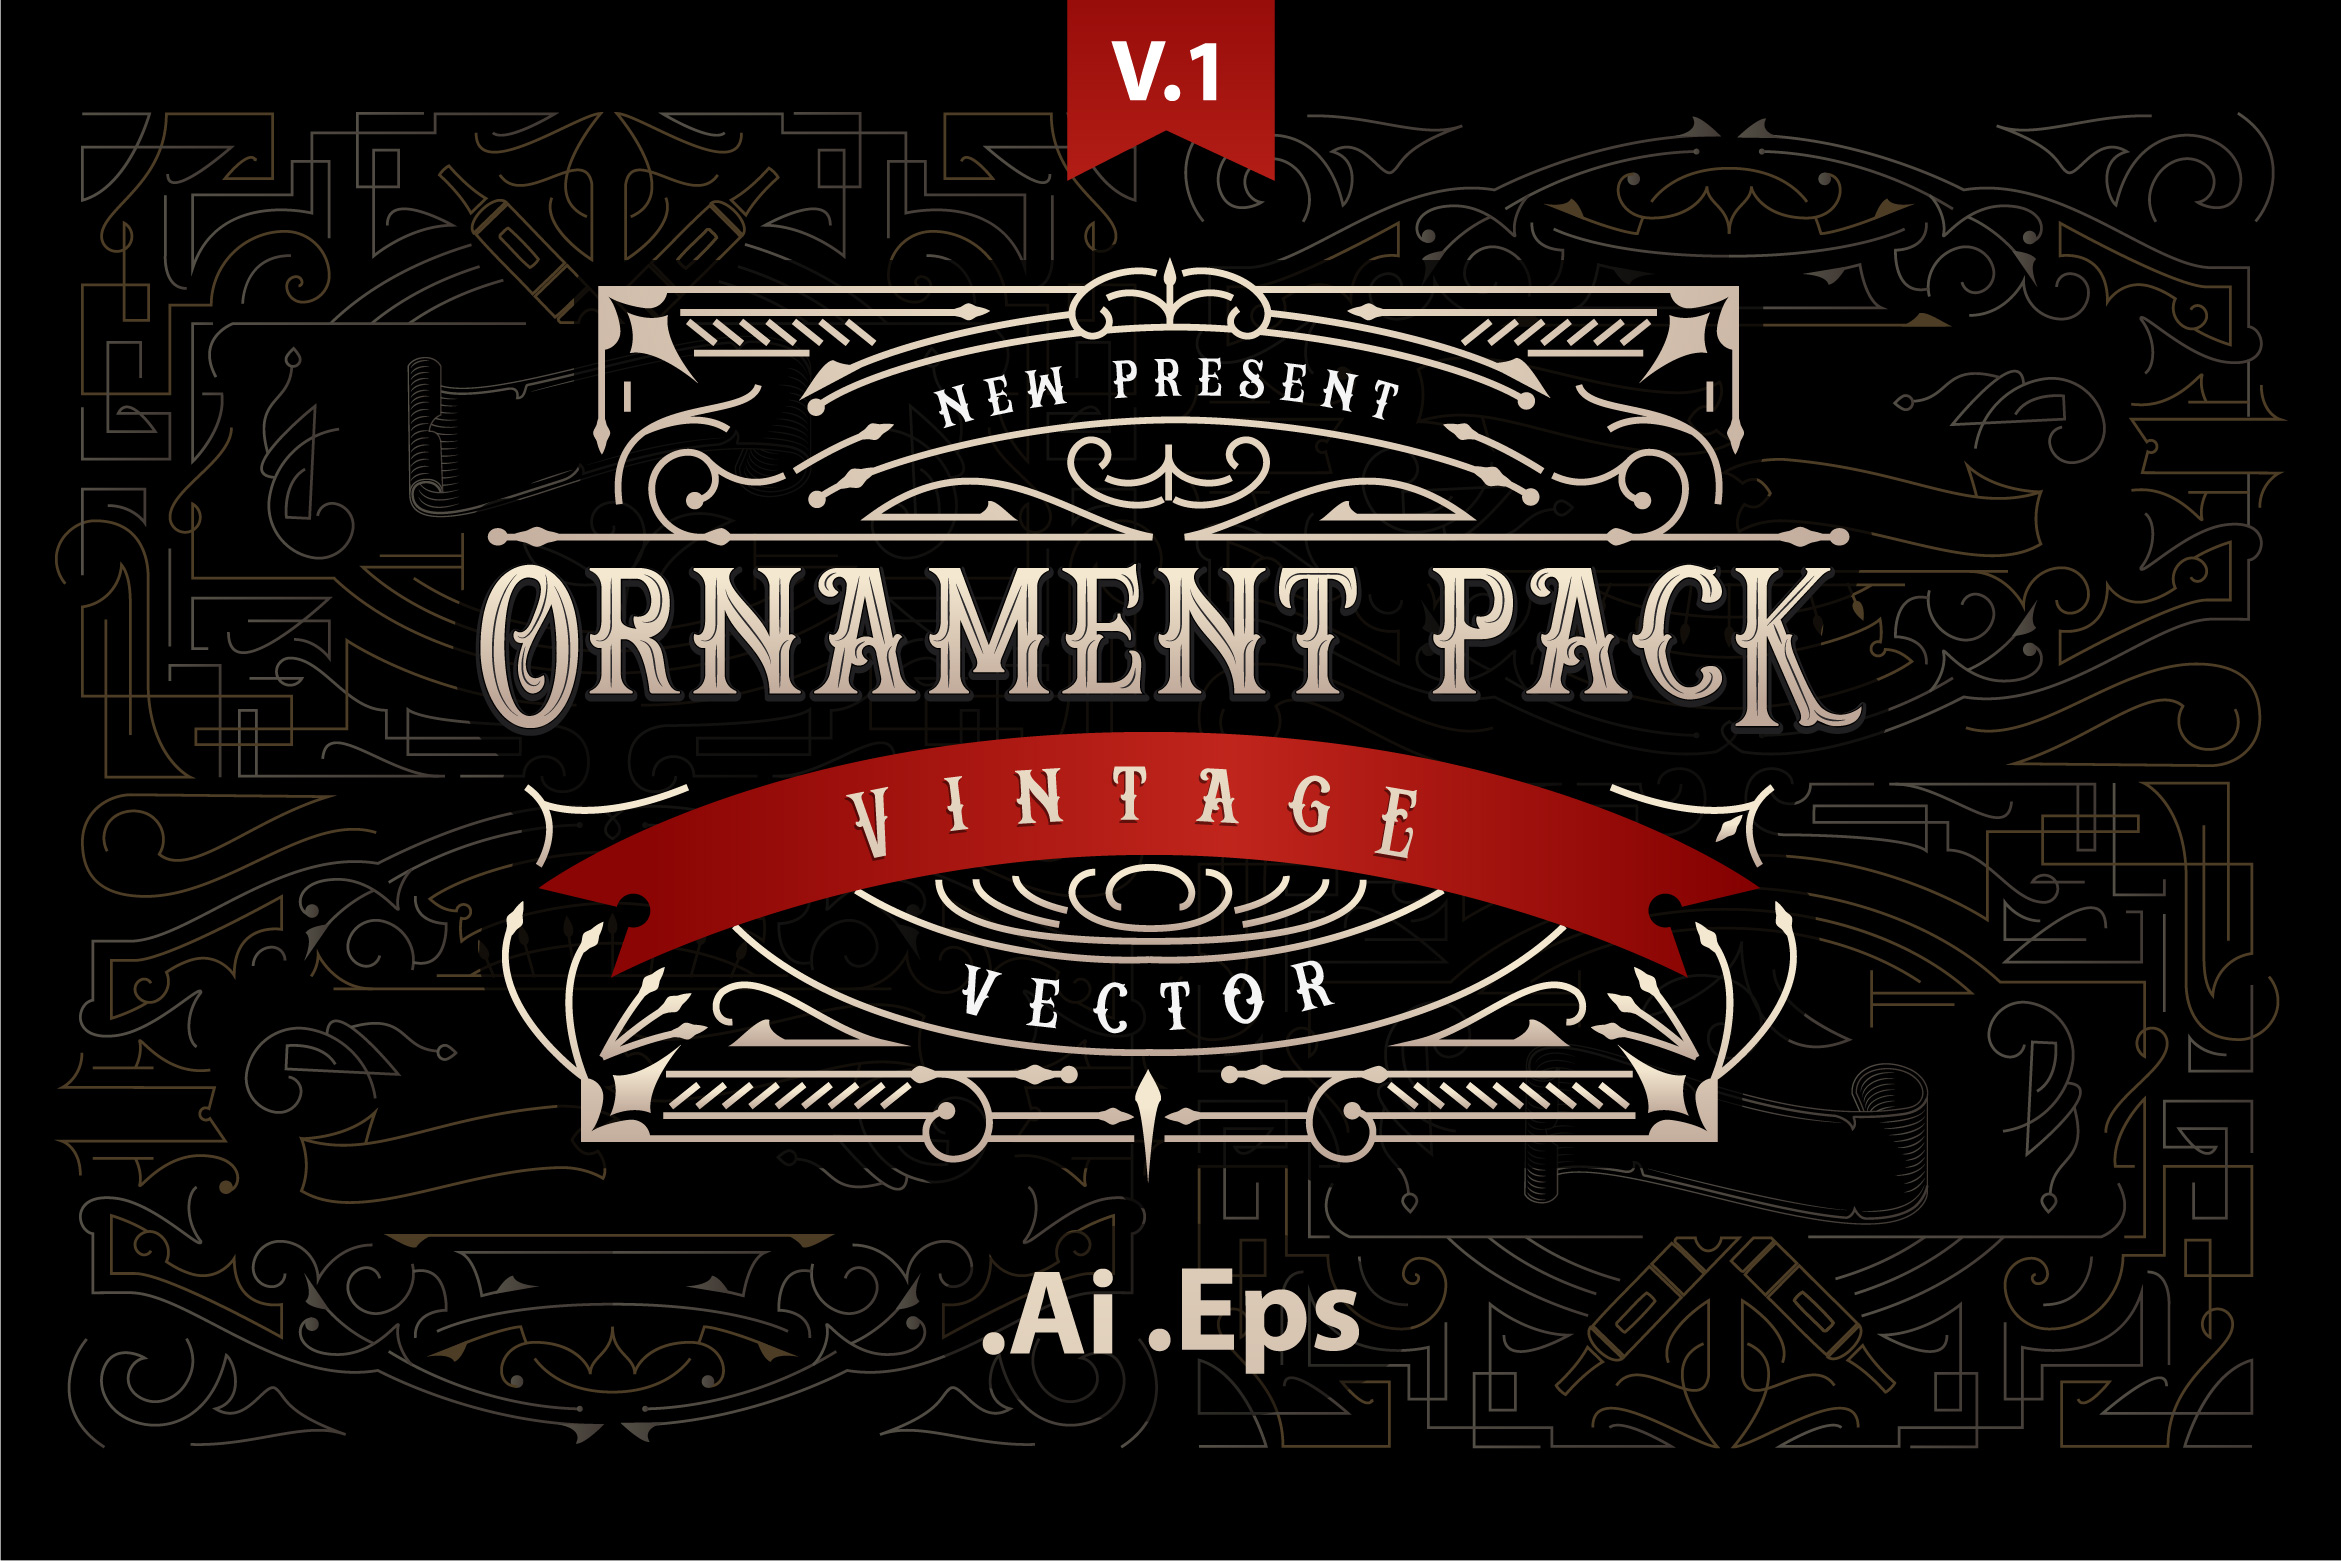 Ornament Pack Vintage 1 Graphic By storictype Image 1